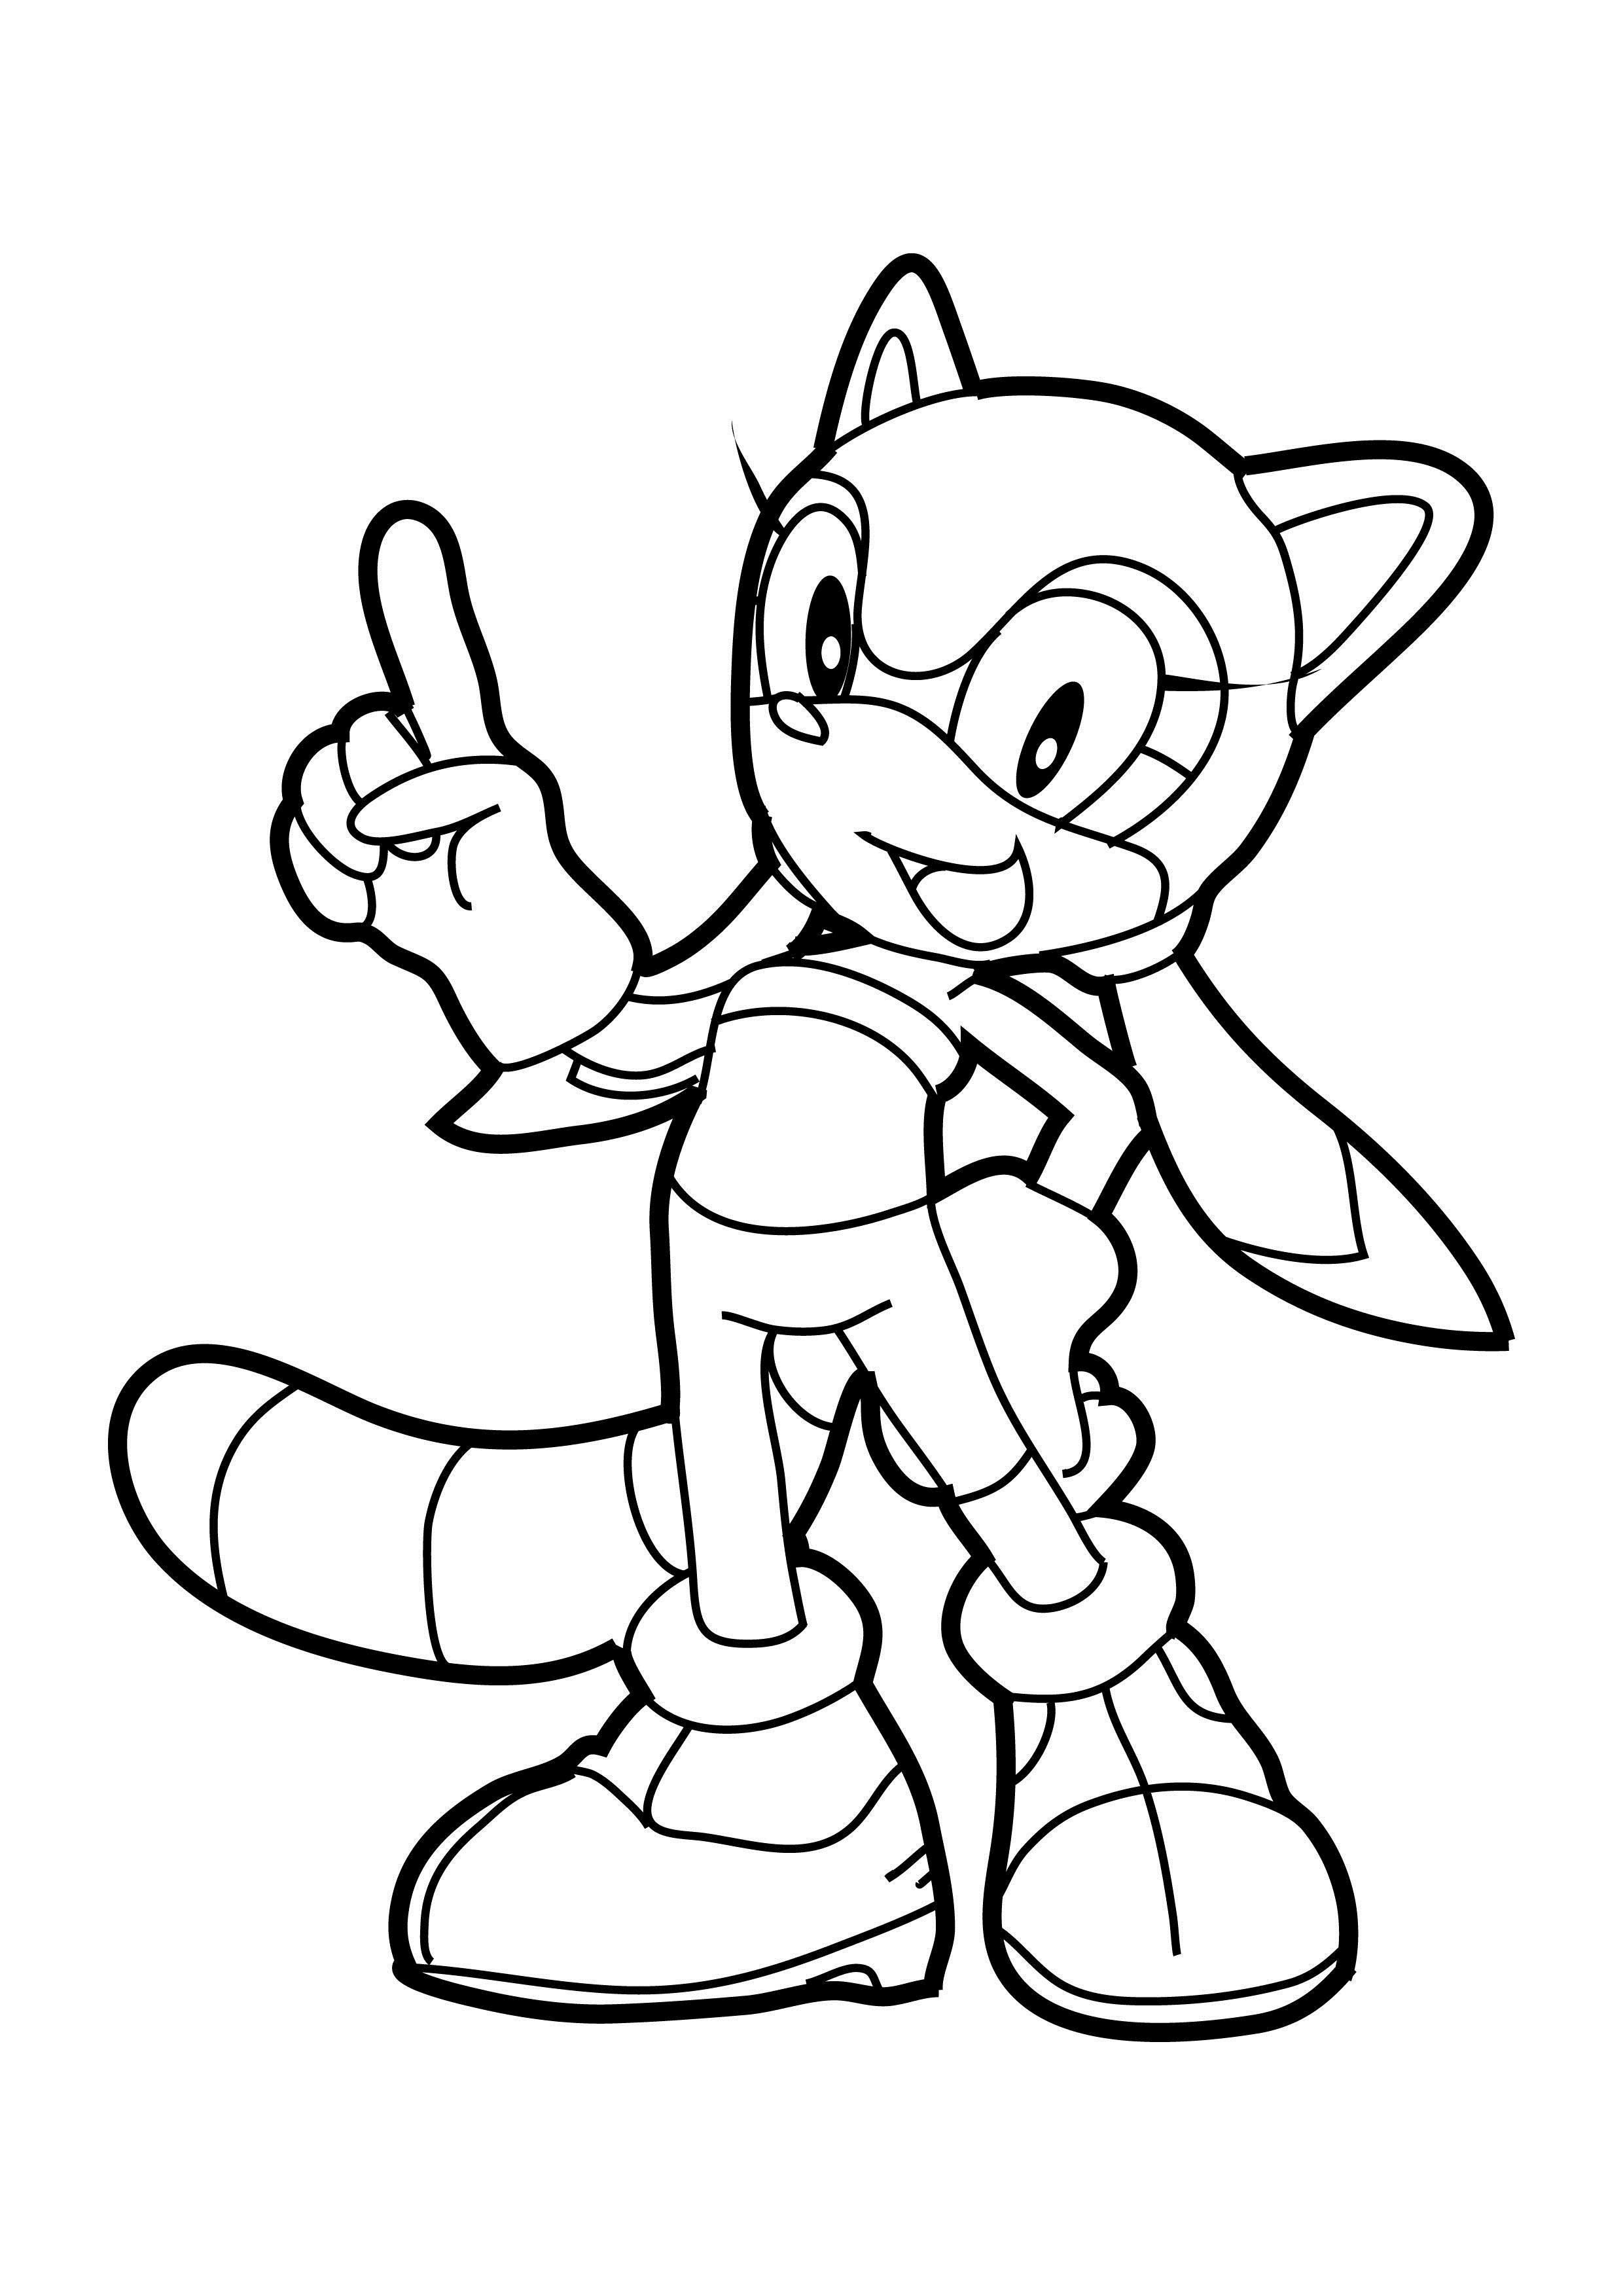 2480x3508 Rouge Sonic And Friends Coloring Baby Minnie Coloring Pages Dragon